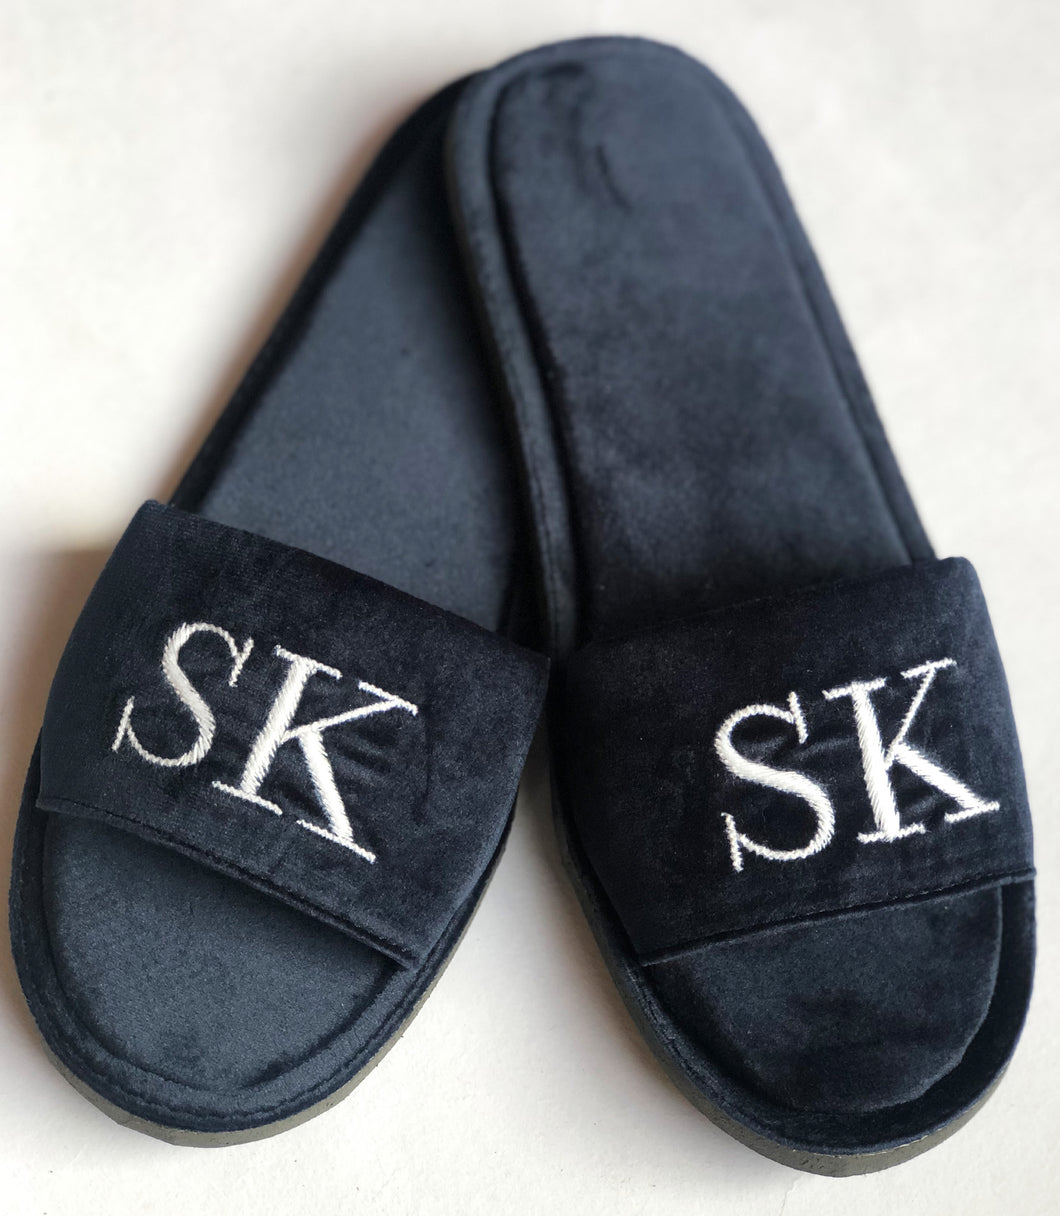 Initial Velvet Slippers - Midnight Blue